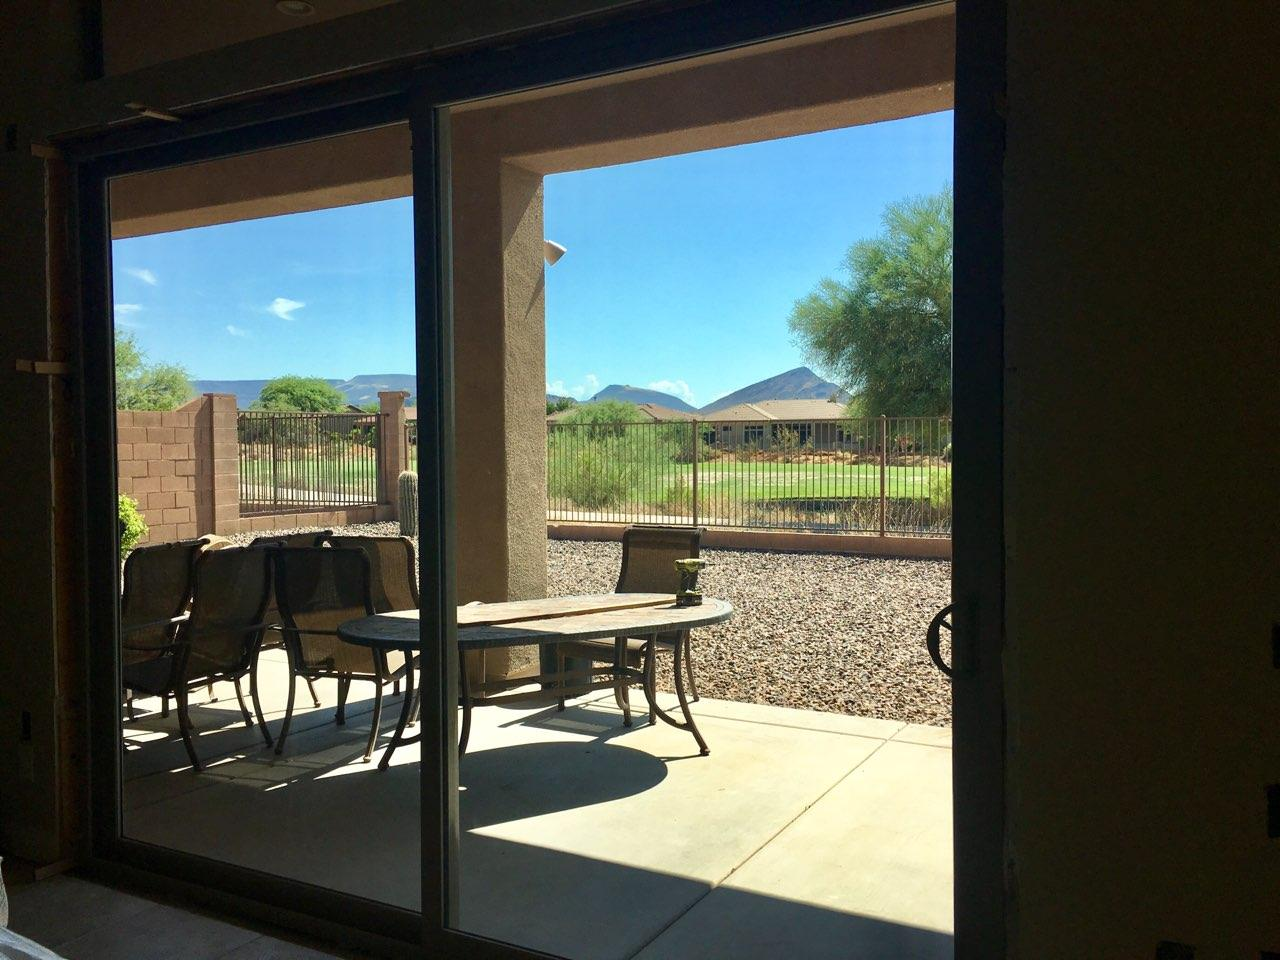 Arizona Window and Door in Scottsdale and Tucson showing sliding patio door